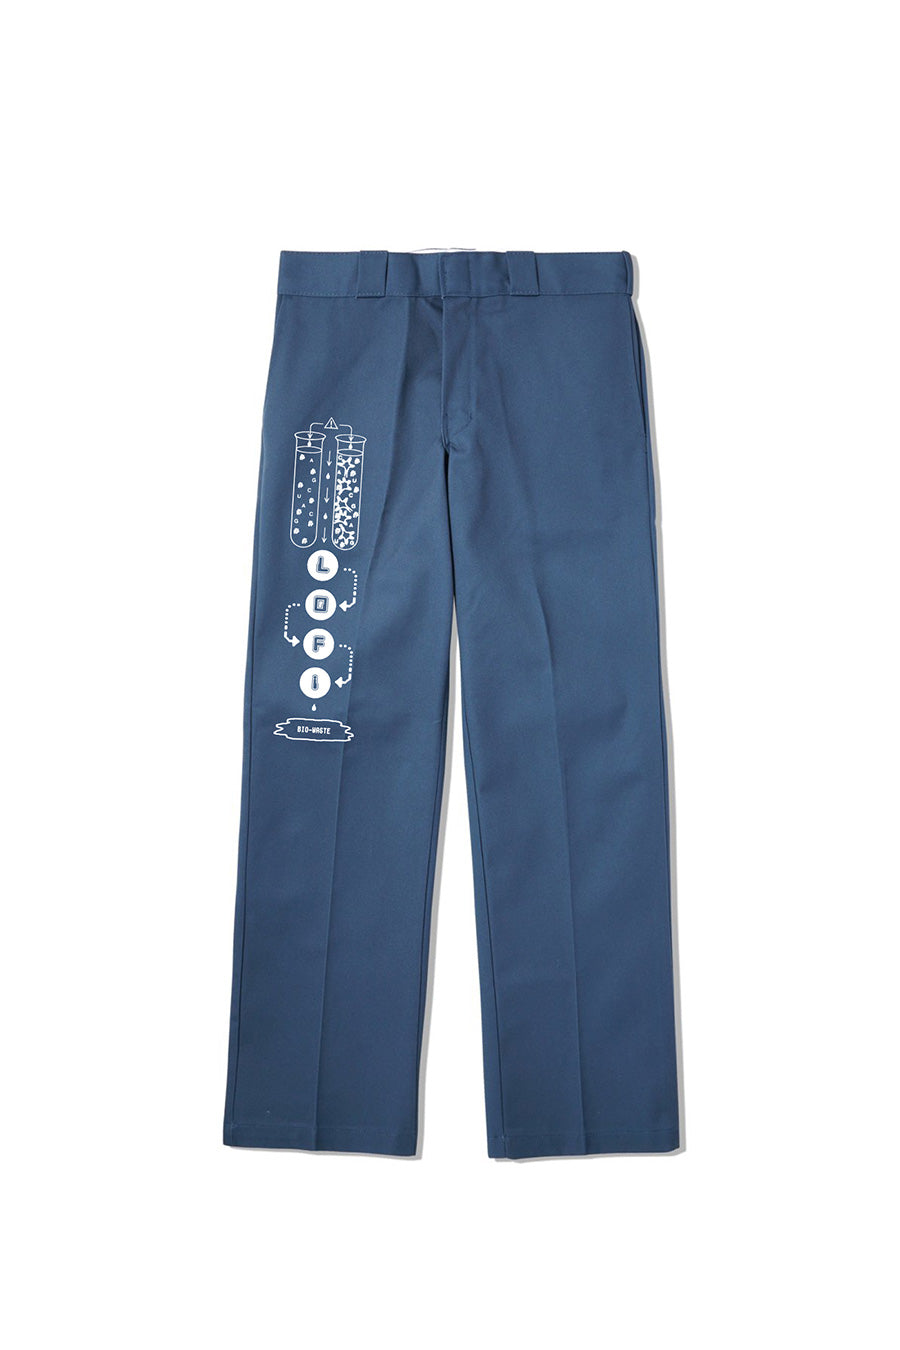 Lo-Fi - Airforce Blue Experiment Dickies 874 | 1032 SPACE